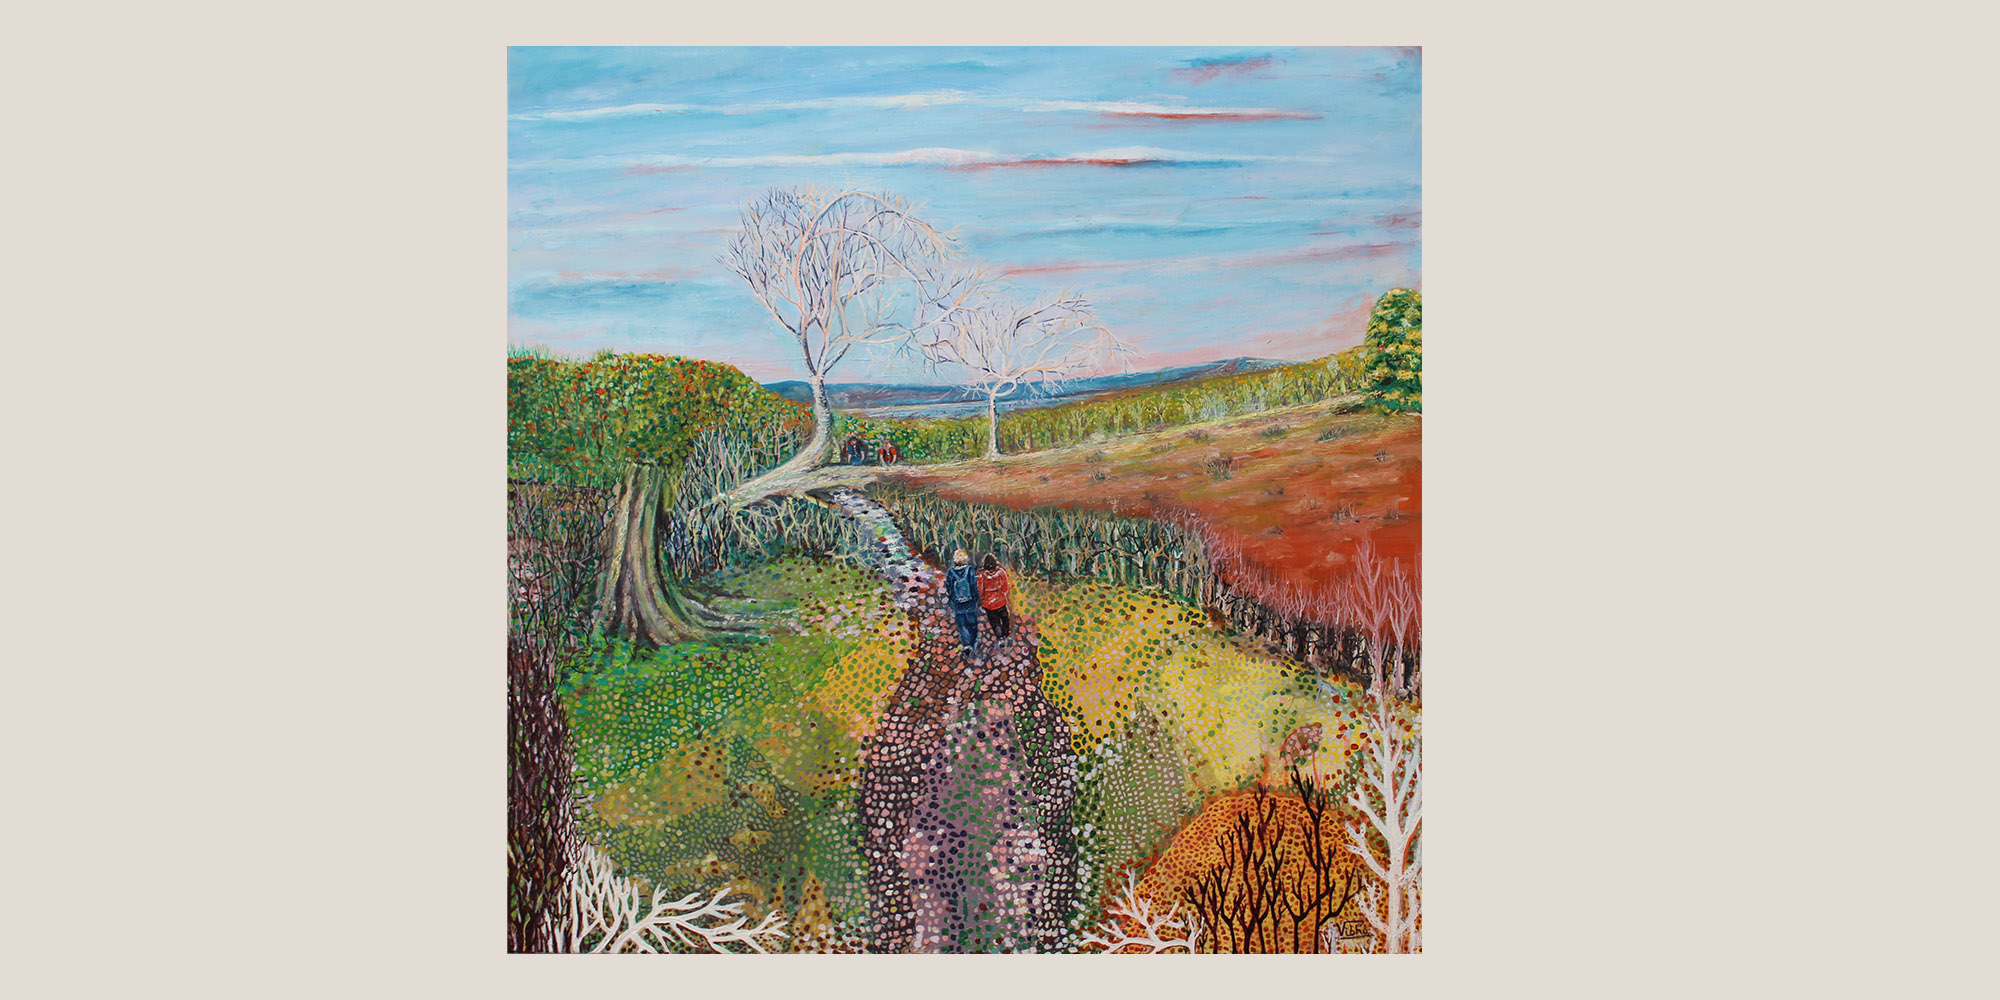 The Rhymers tree at Elidon, 2 figure walking in bright landscape